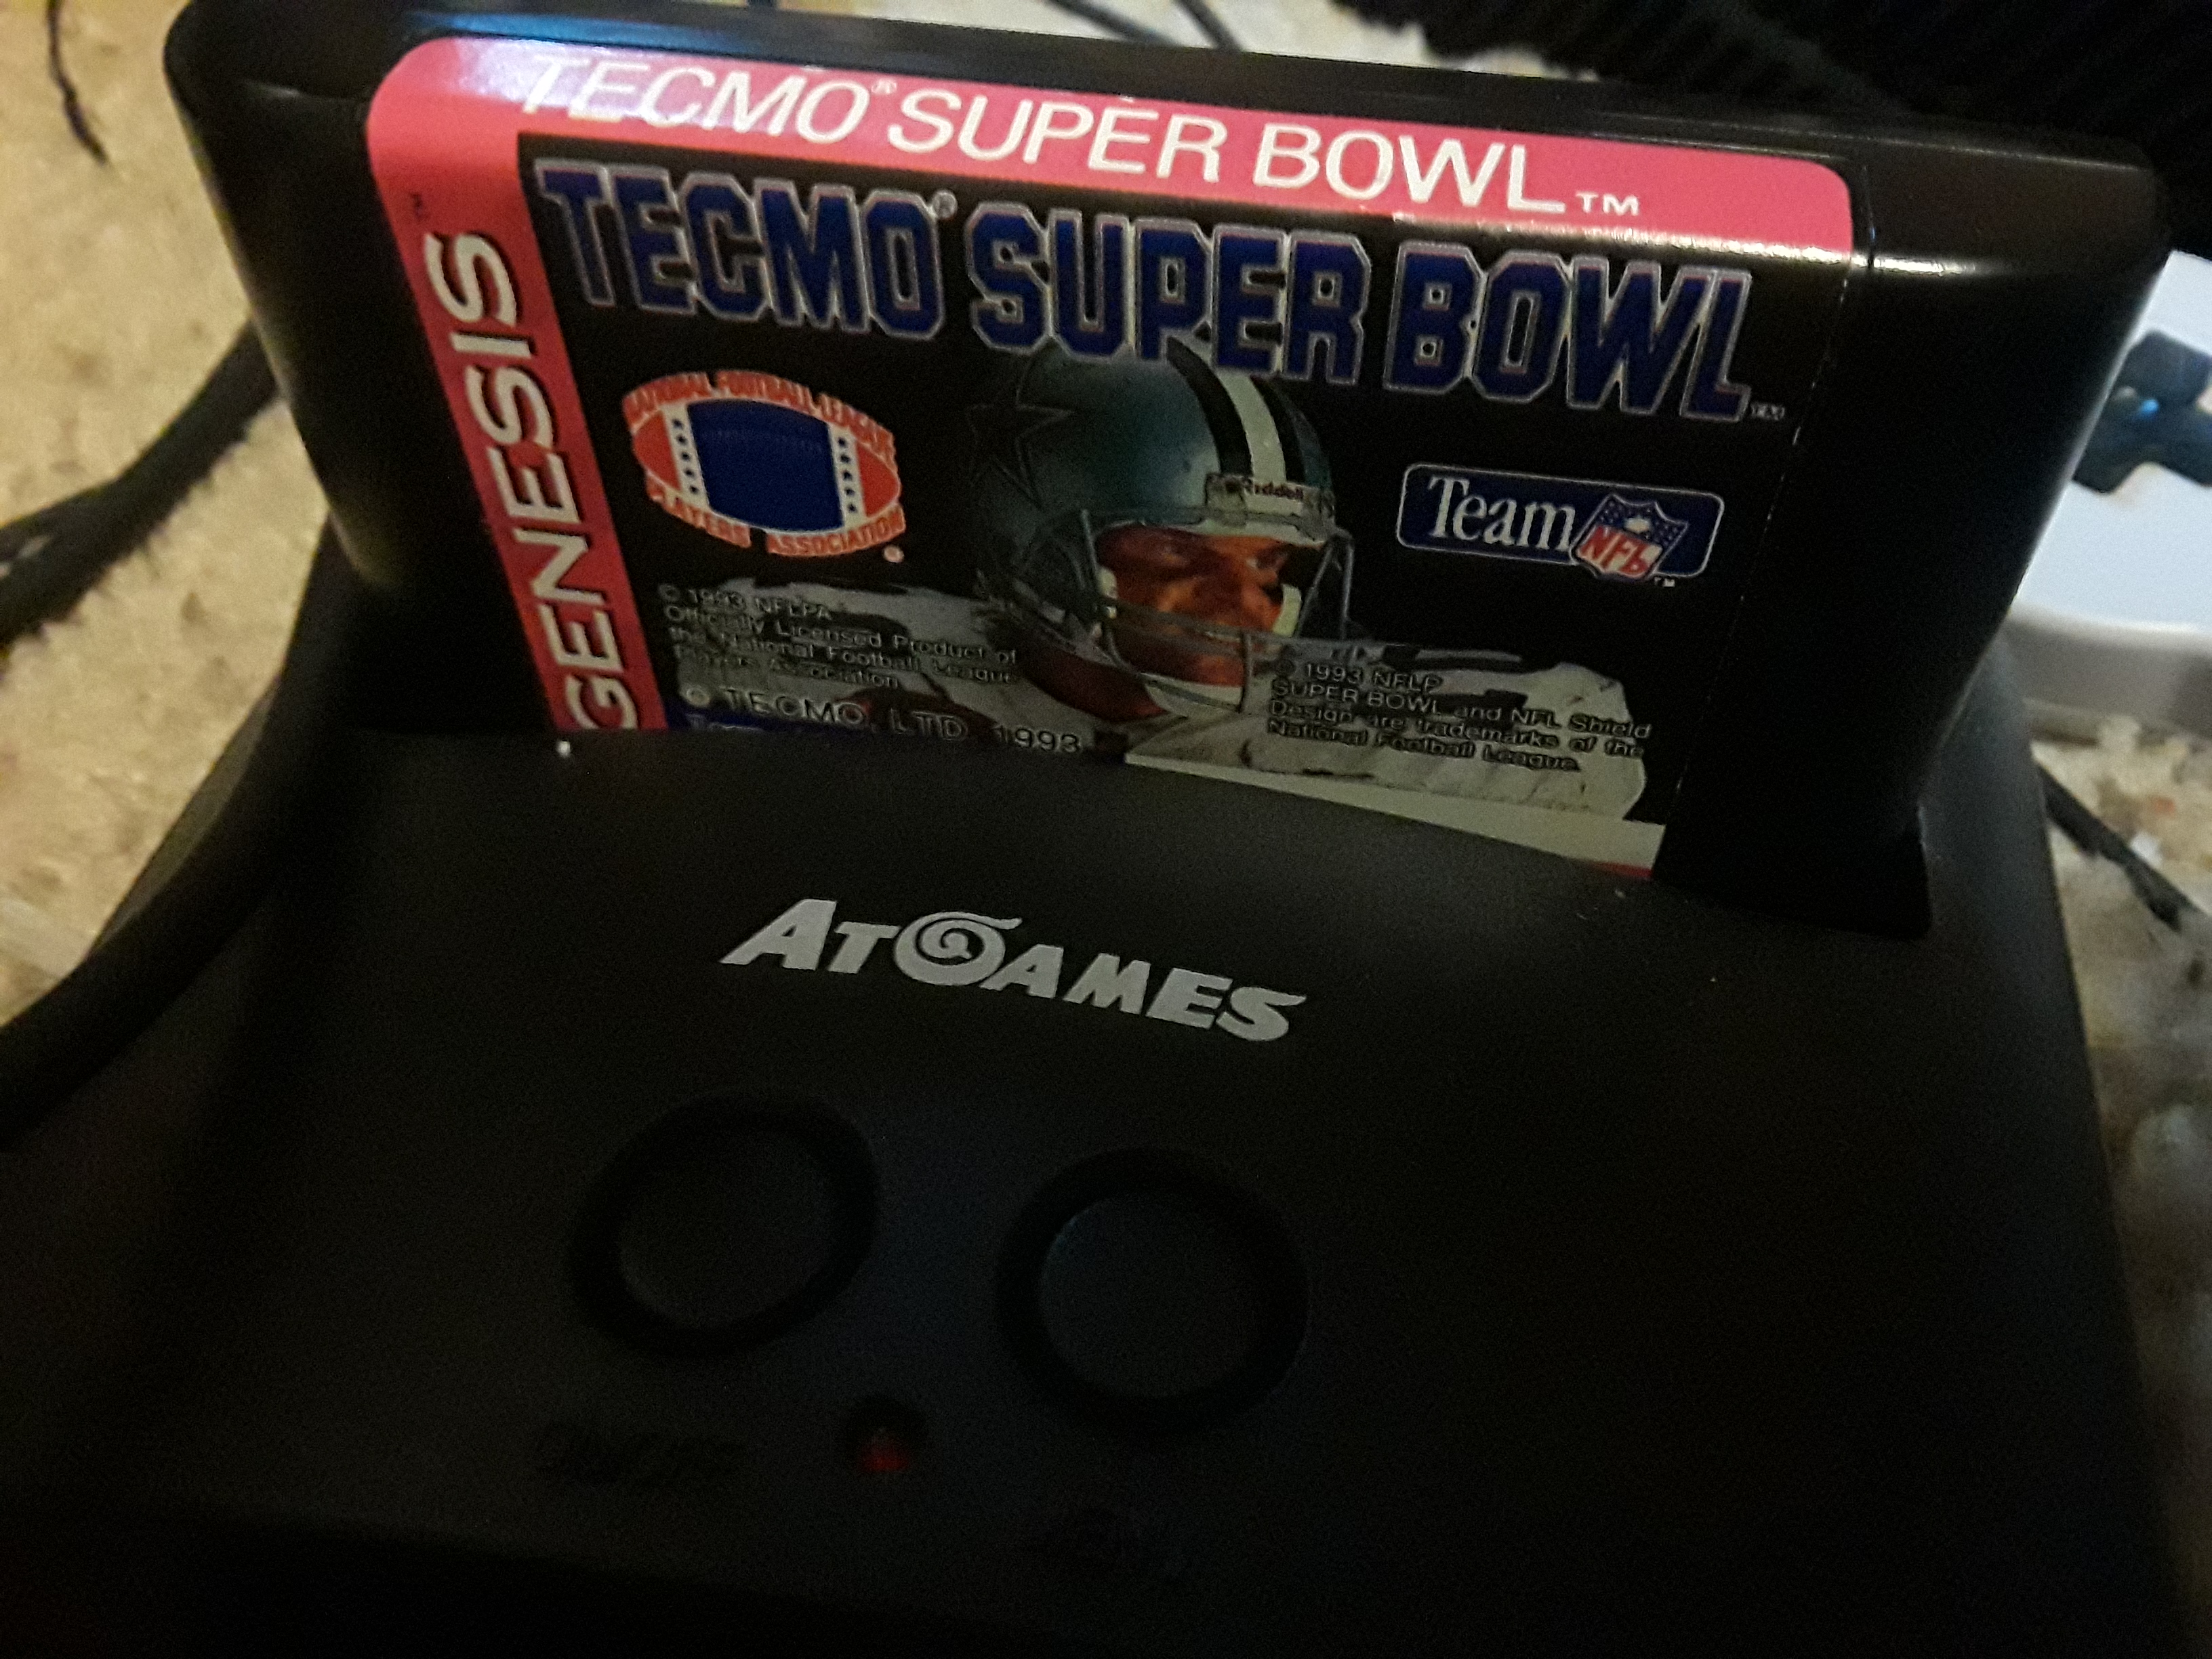 Tecmo Super Bowl [Most Receiving Yards] [Pro Bowl] 396 points